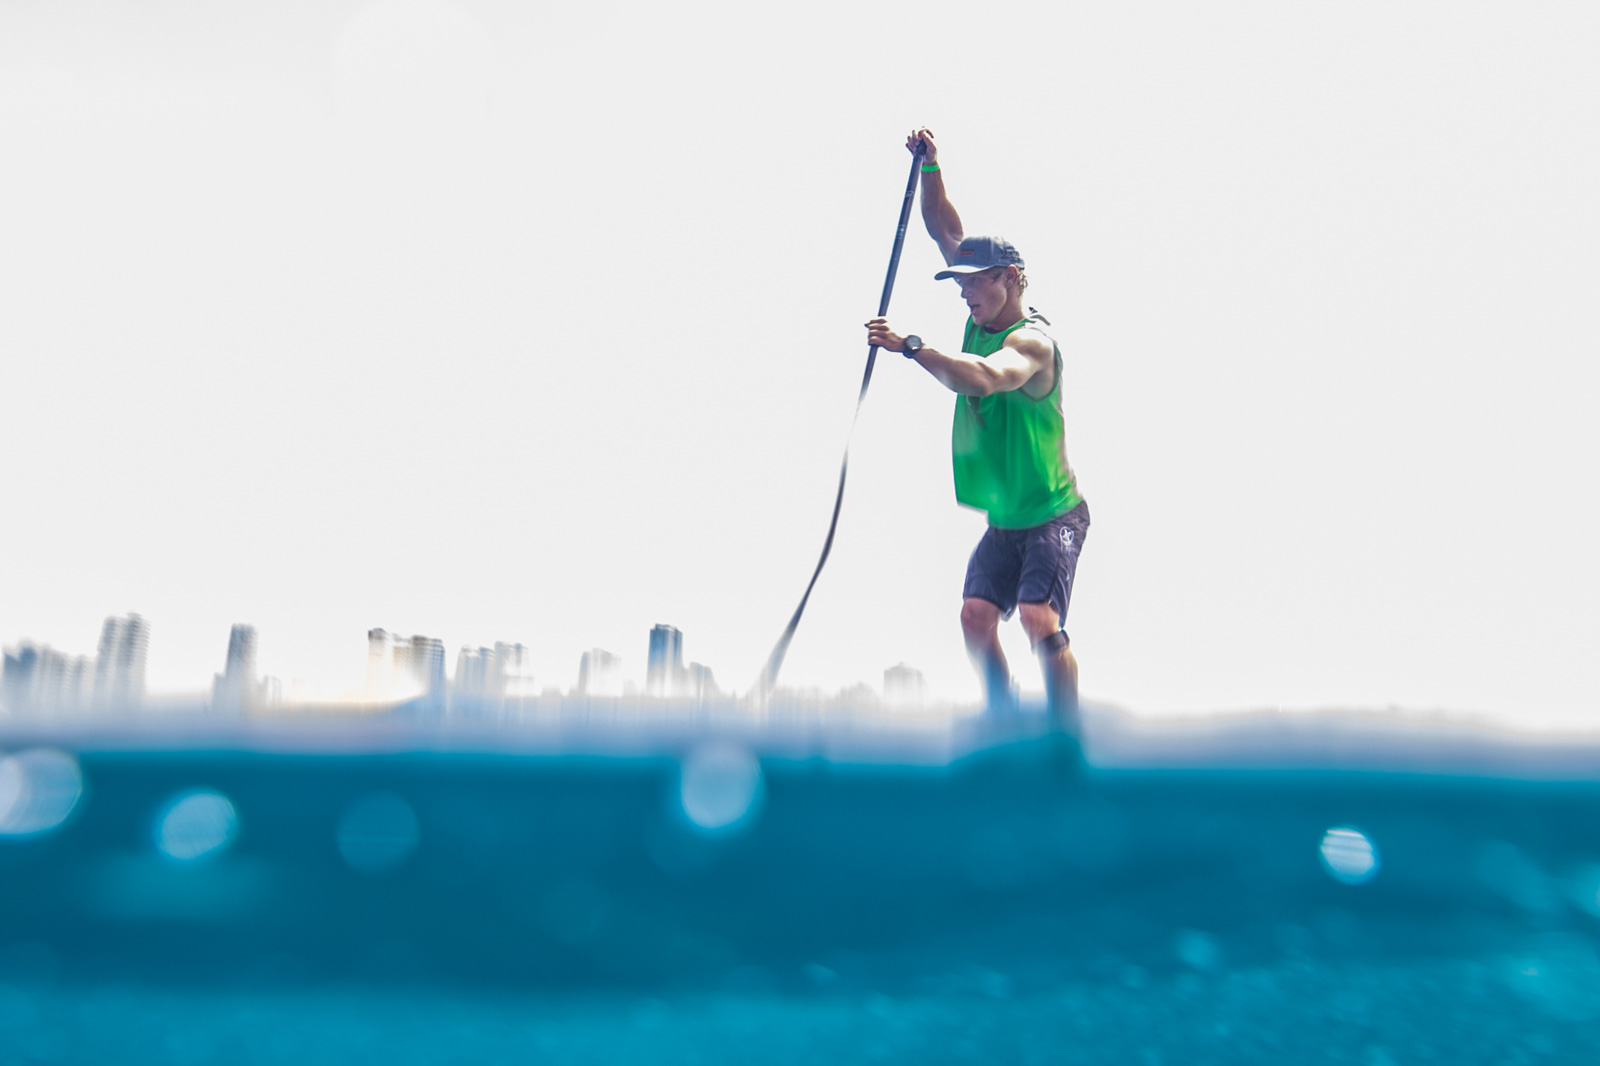 Starboard-12-Towers-2018-SUP-race-michael-booth-australia-2